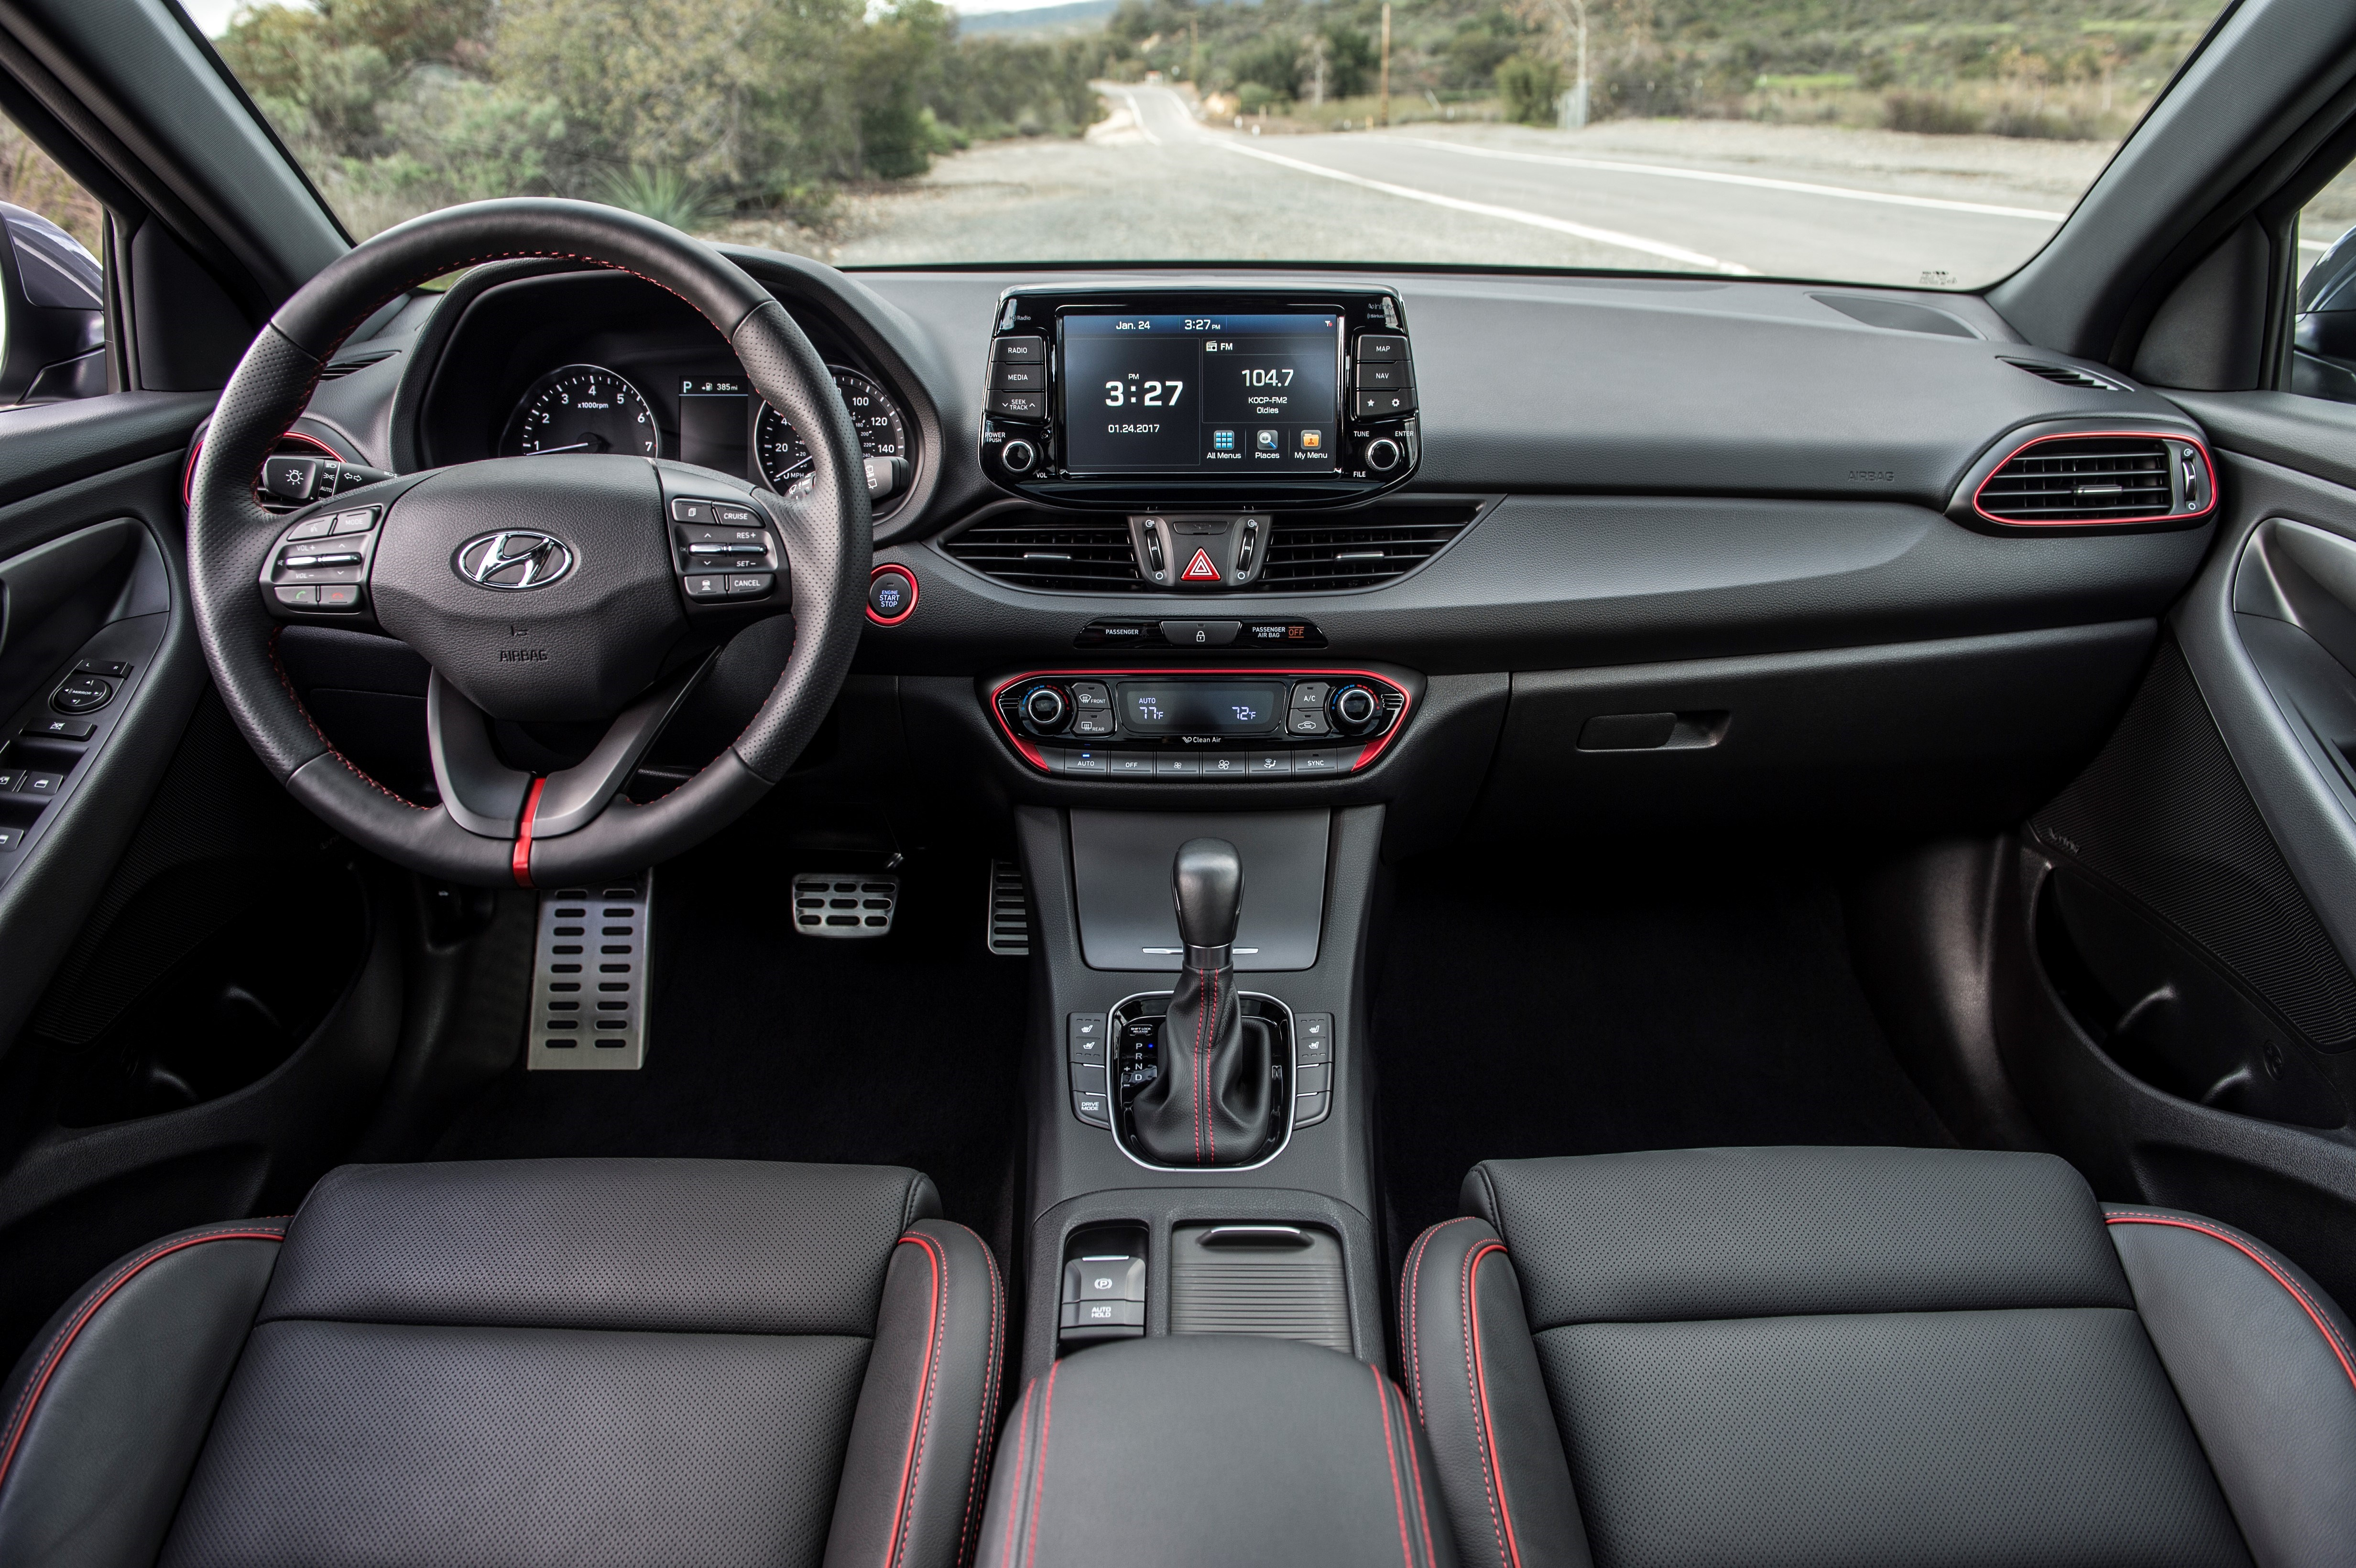 Inside, the 2018 Hyundai Elantra GT offers comfortable seating in the front and intuitive controls. Rear-seat passengers aren't going to feel so pampered.